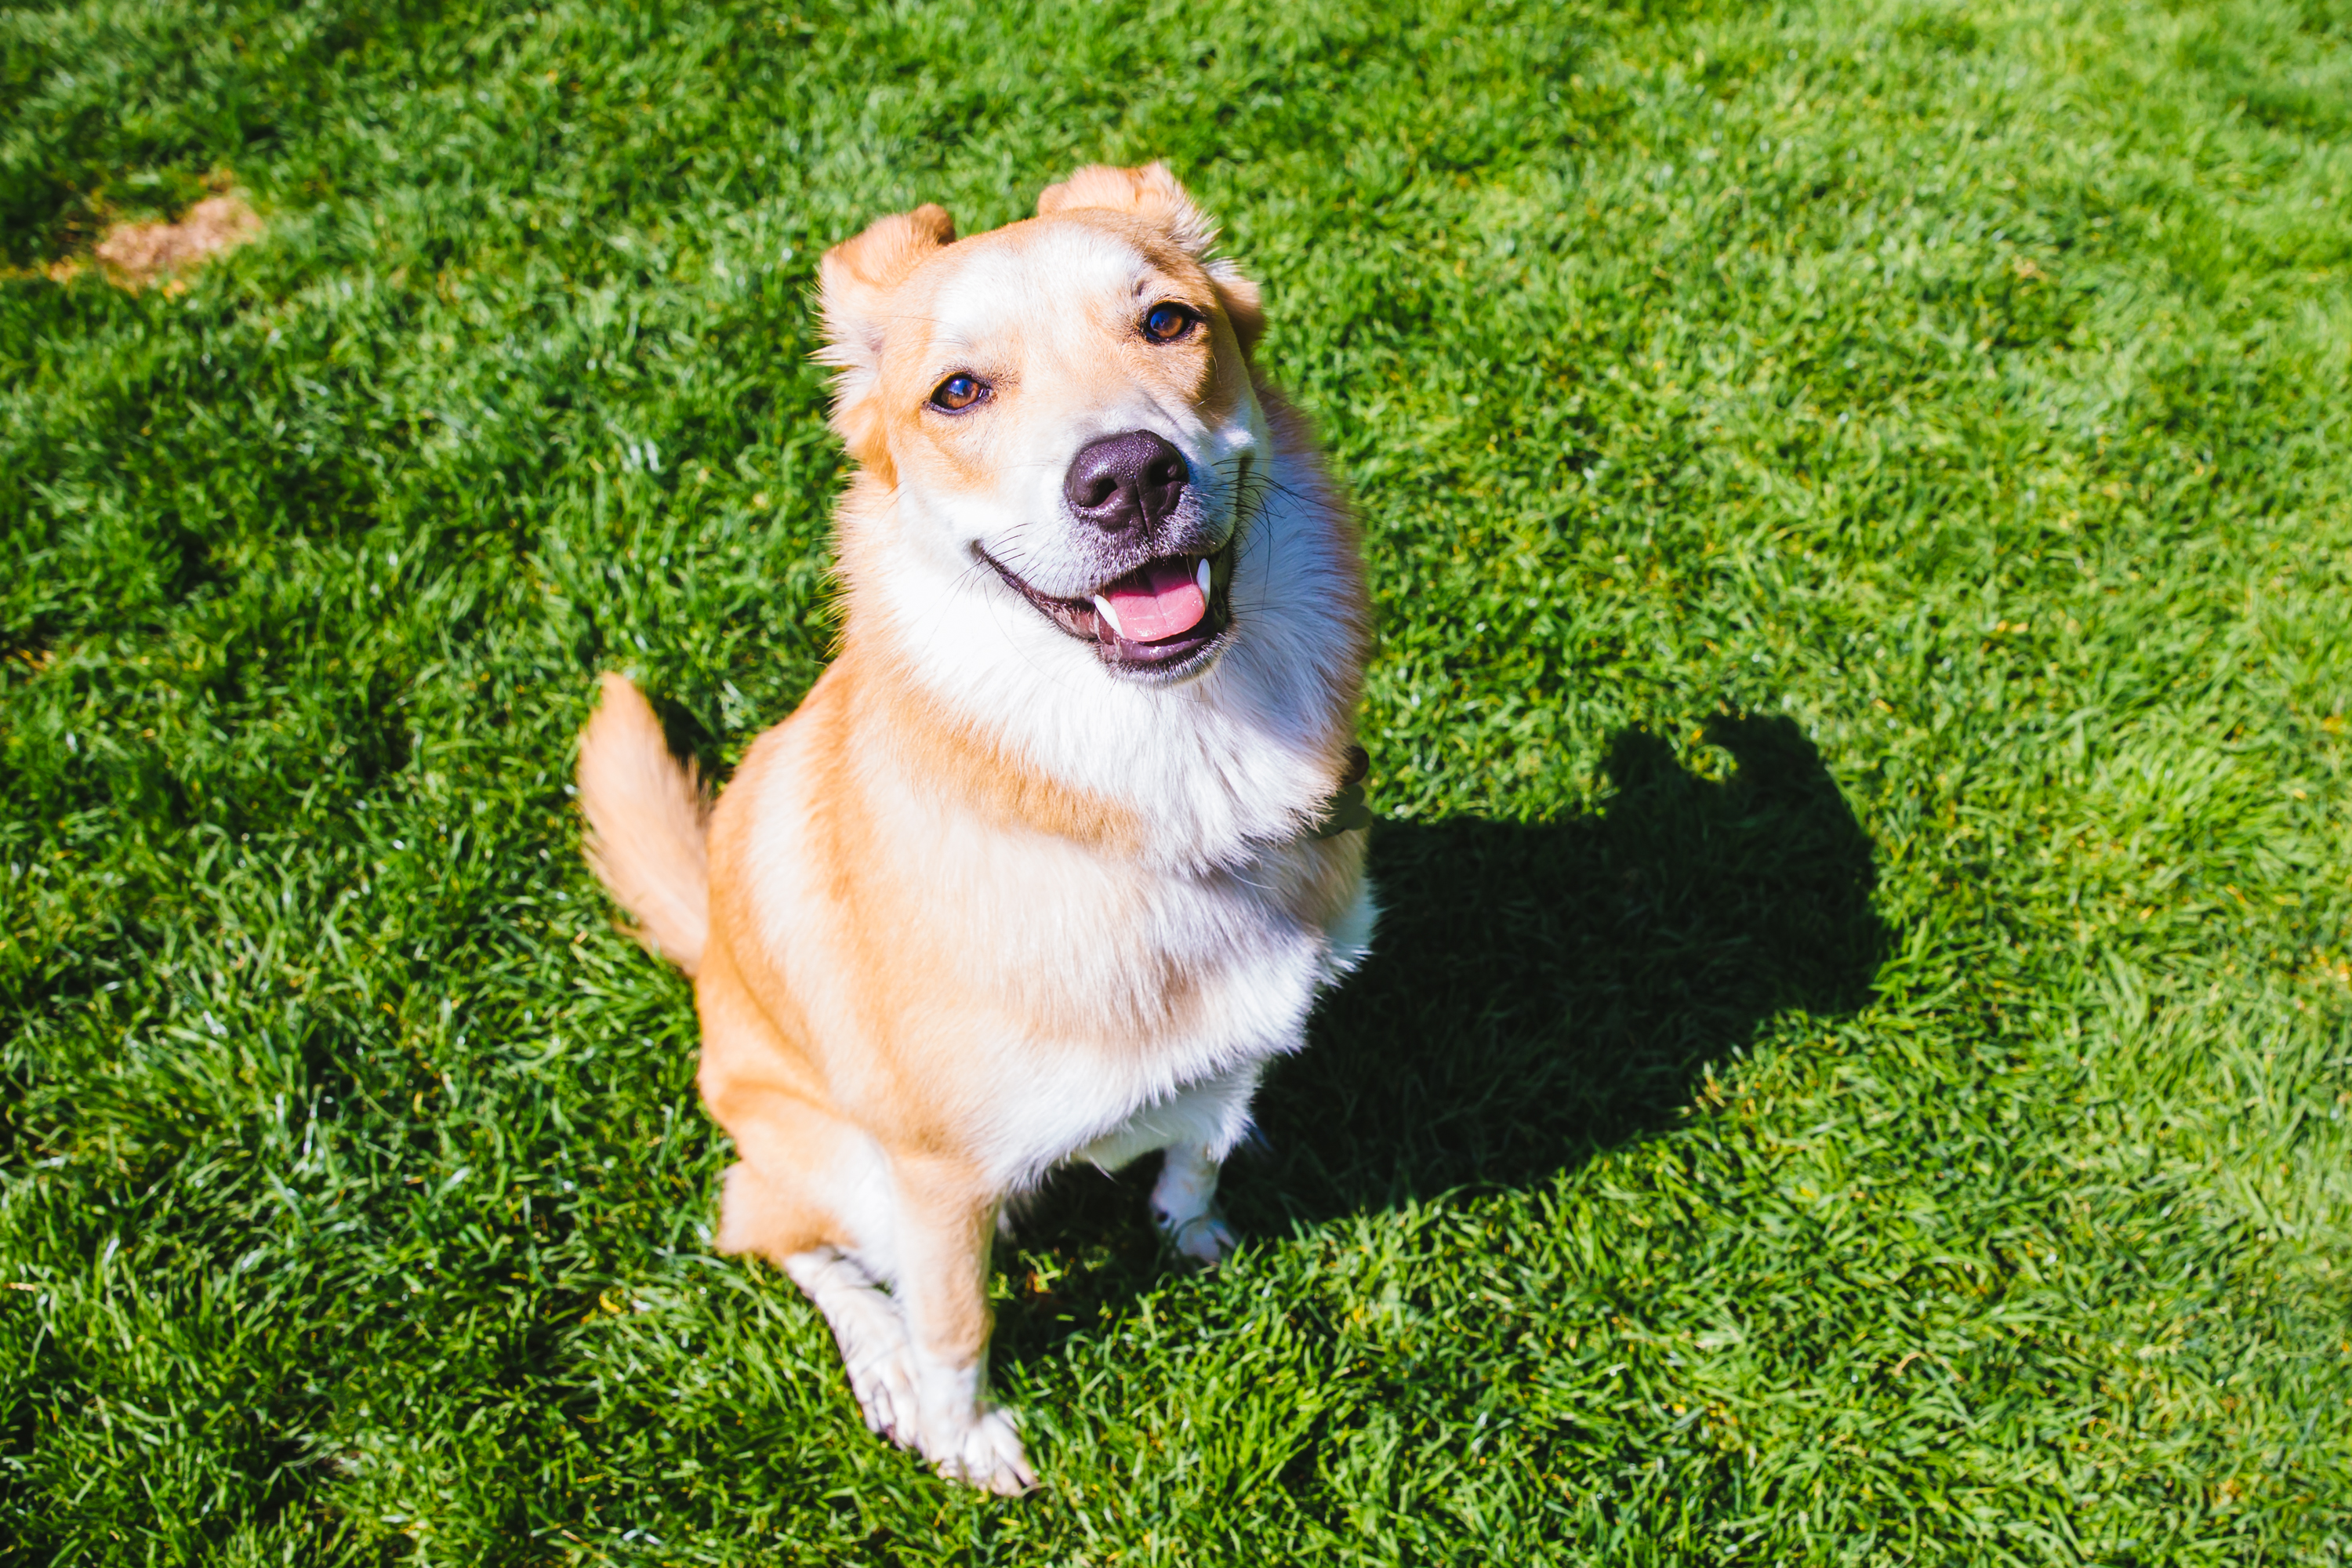 Everyone meet, Daisy! Daisy is a 10 month old Cattle Dog mix. She was rescued from an reservation in South Dakota by her parents in Seattle. Daisy likes hiding bones in the couch, cuddles, red peppers, swimming, soft blankets, and licking the dishwasher. Ahhh, nothing like the taste of fresh dishes! She dislikes bath time, people who don't give pats, her mom's hairdryer, hot nights, and loud noises. The Seattle RUFFined Spotlight is a weekly profile of local pets living and loving life in the PNW. If you or someone you know has a pet you'd like featured, email us at hello@seattlerefined.com or tag #SeattleRUFFined and your furbaby could be the next spotlighted! (Image: Sunita Martini / Seattle Refined)